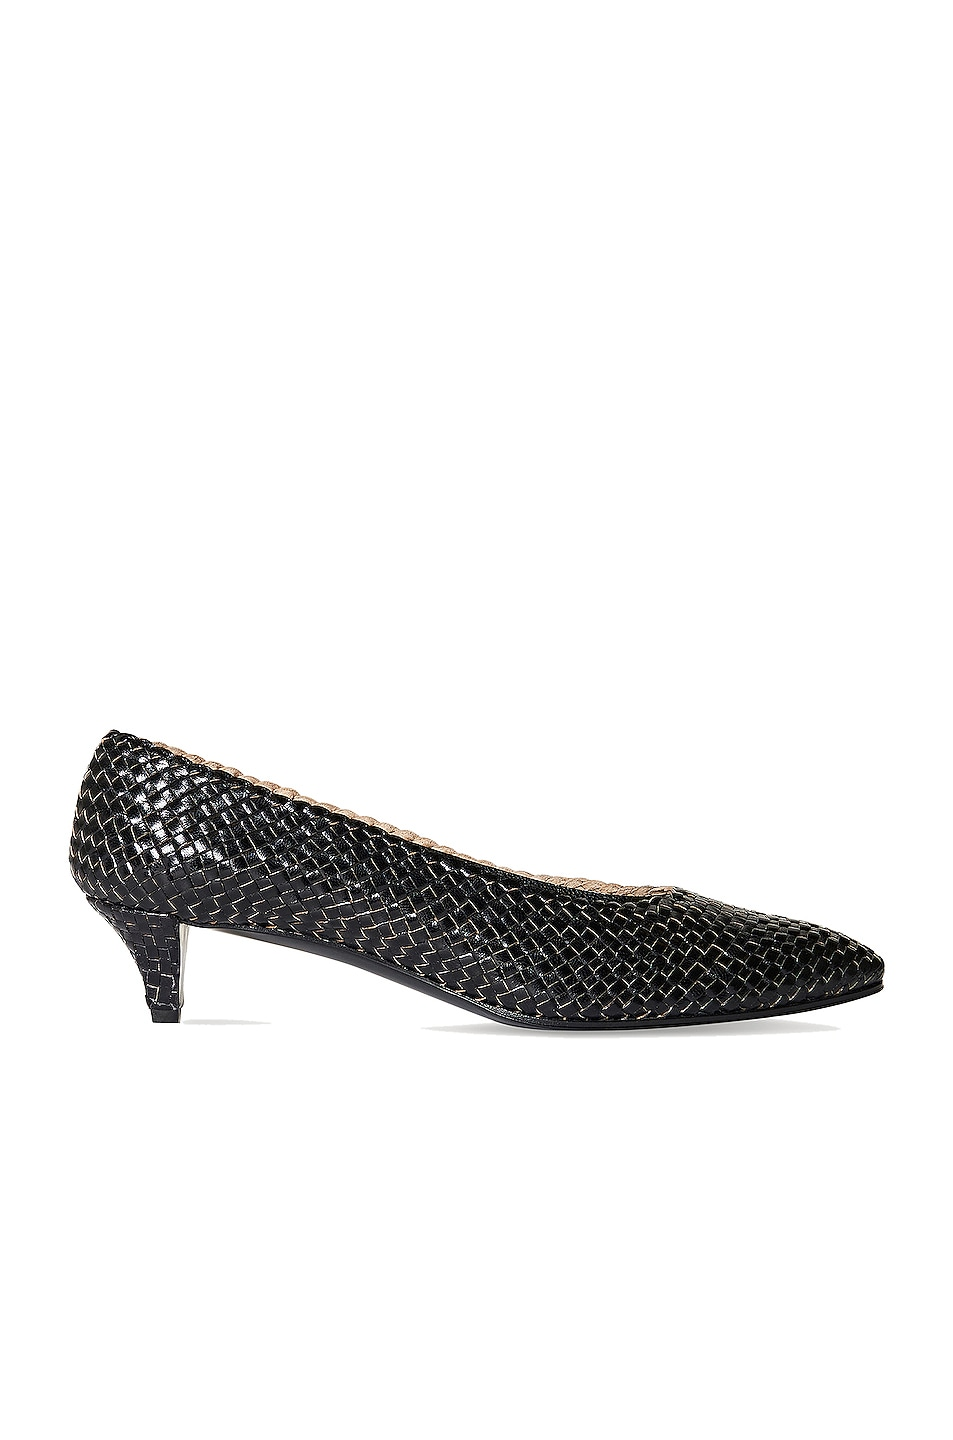 Image 1 of The Row Lady D Woven Leather Kitten Heels in Black